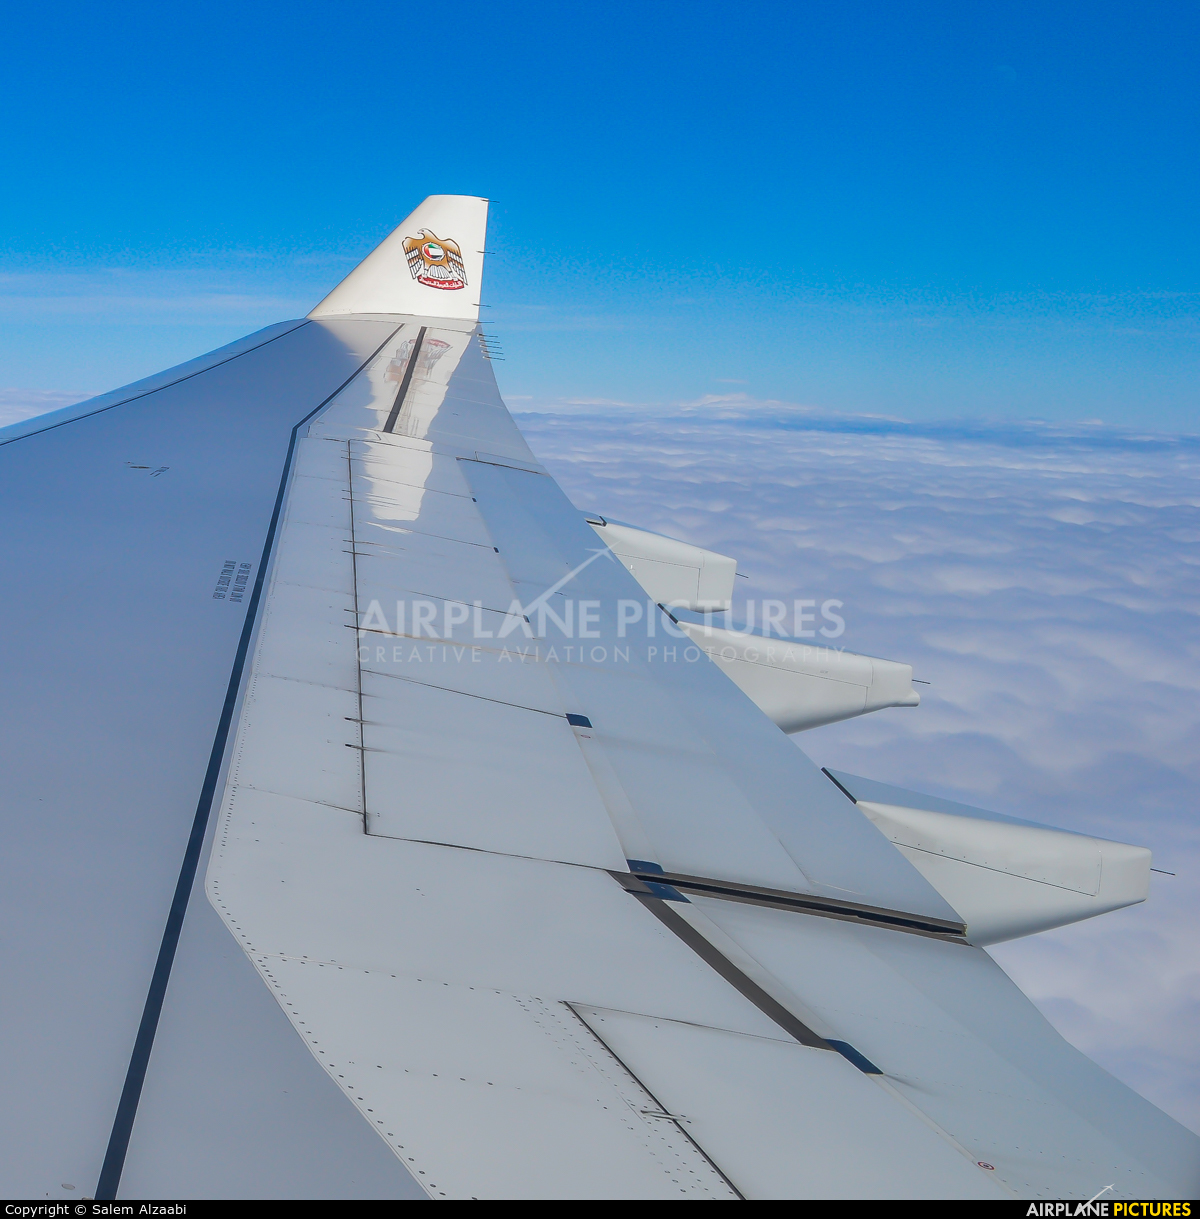 Etihad Airways A6-AFE aircraft at In Flight - International